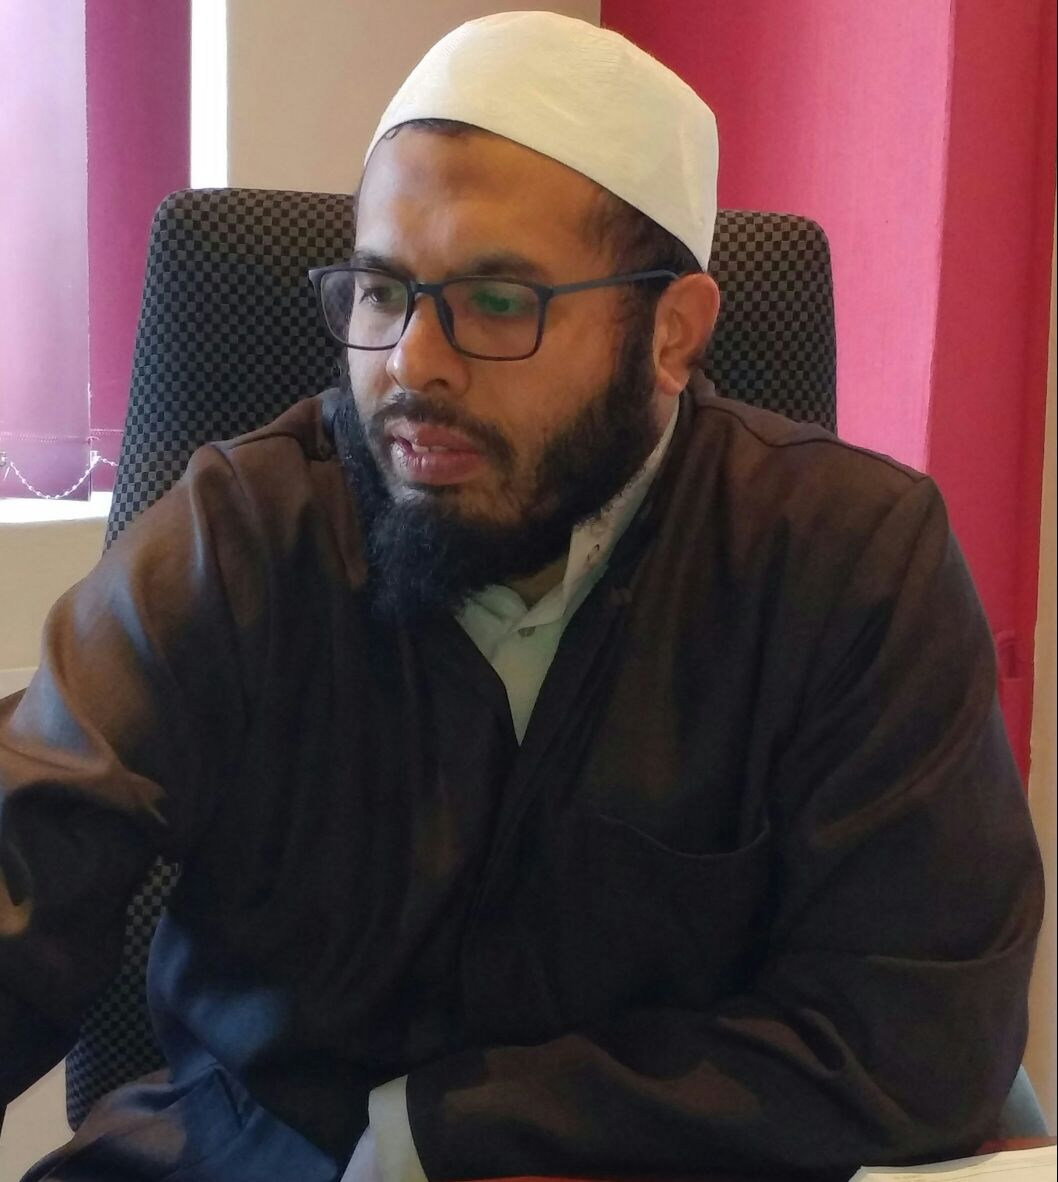 MJC WELCOMES NEW STAFF MEMBER TO FATWA DEPT. fatwa - Moulana Sameegh Sieed - Fatwa